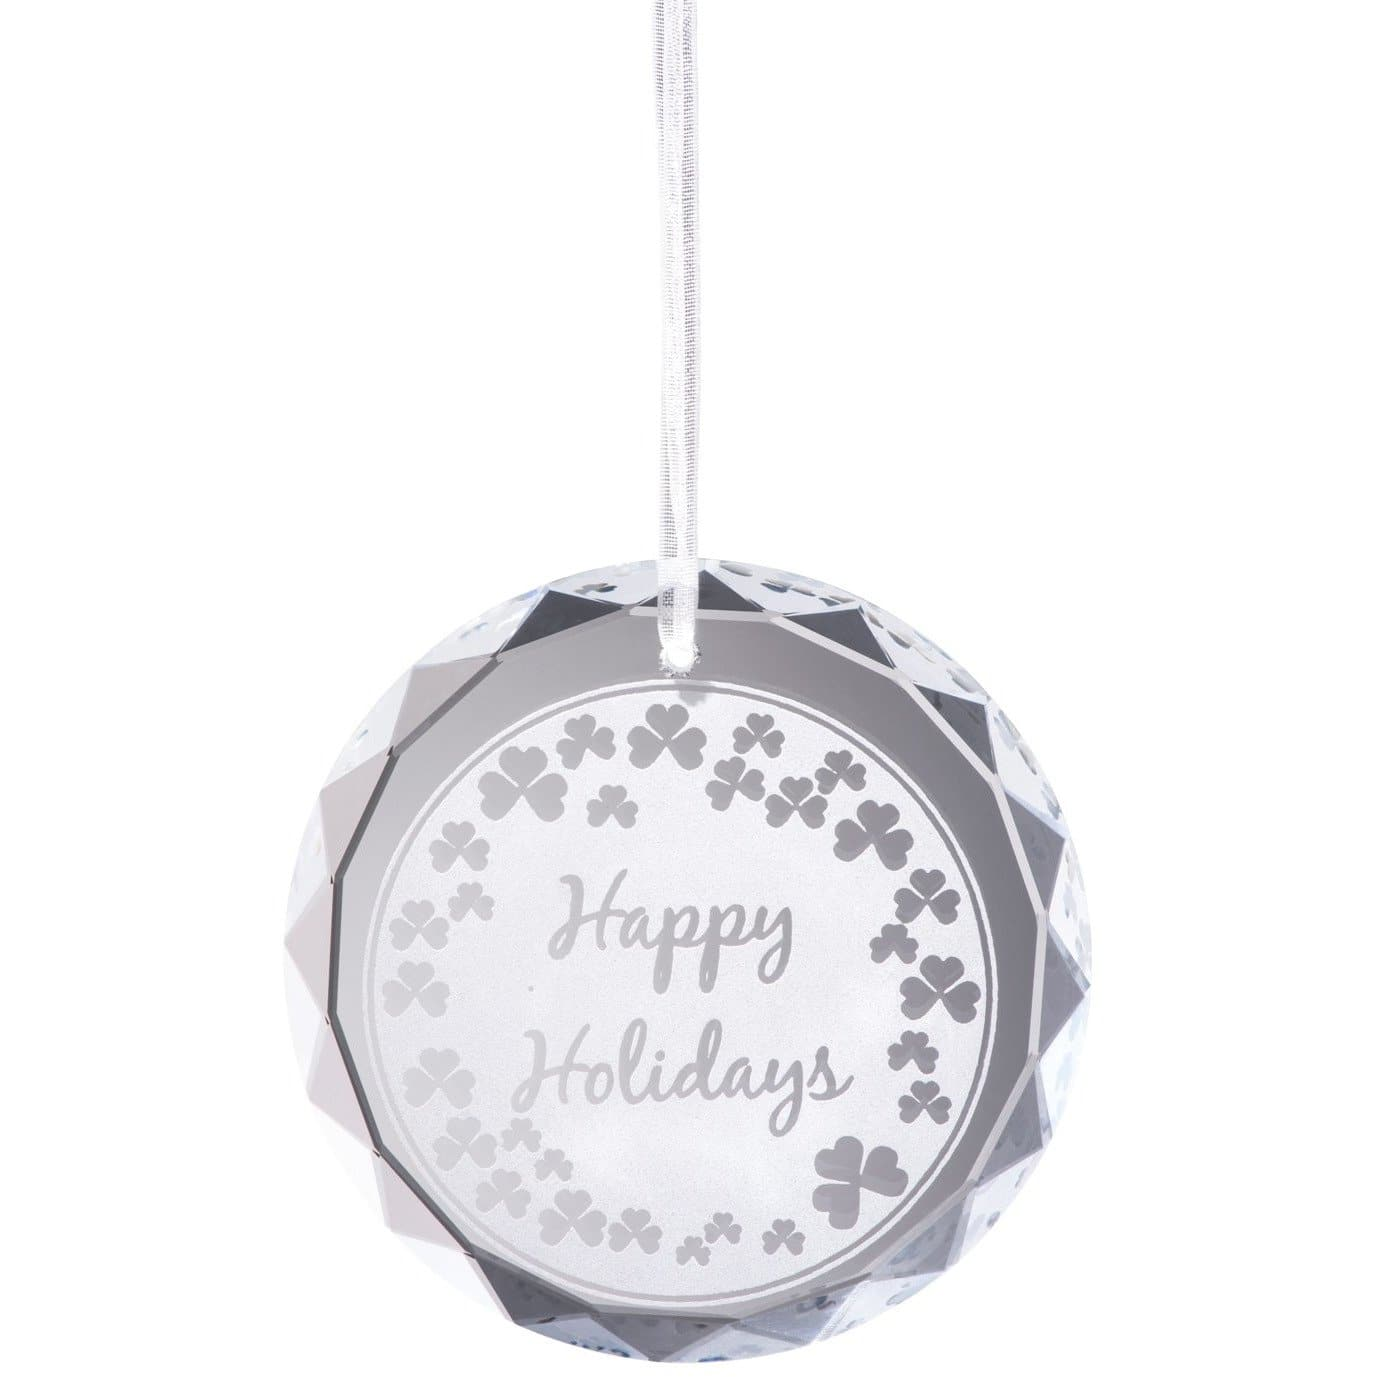 Happy Holidays Hanging Ornament